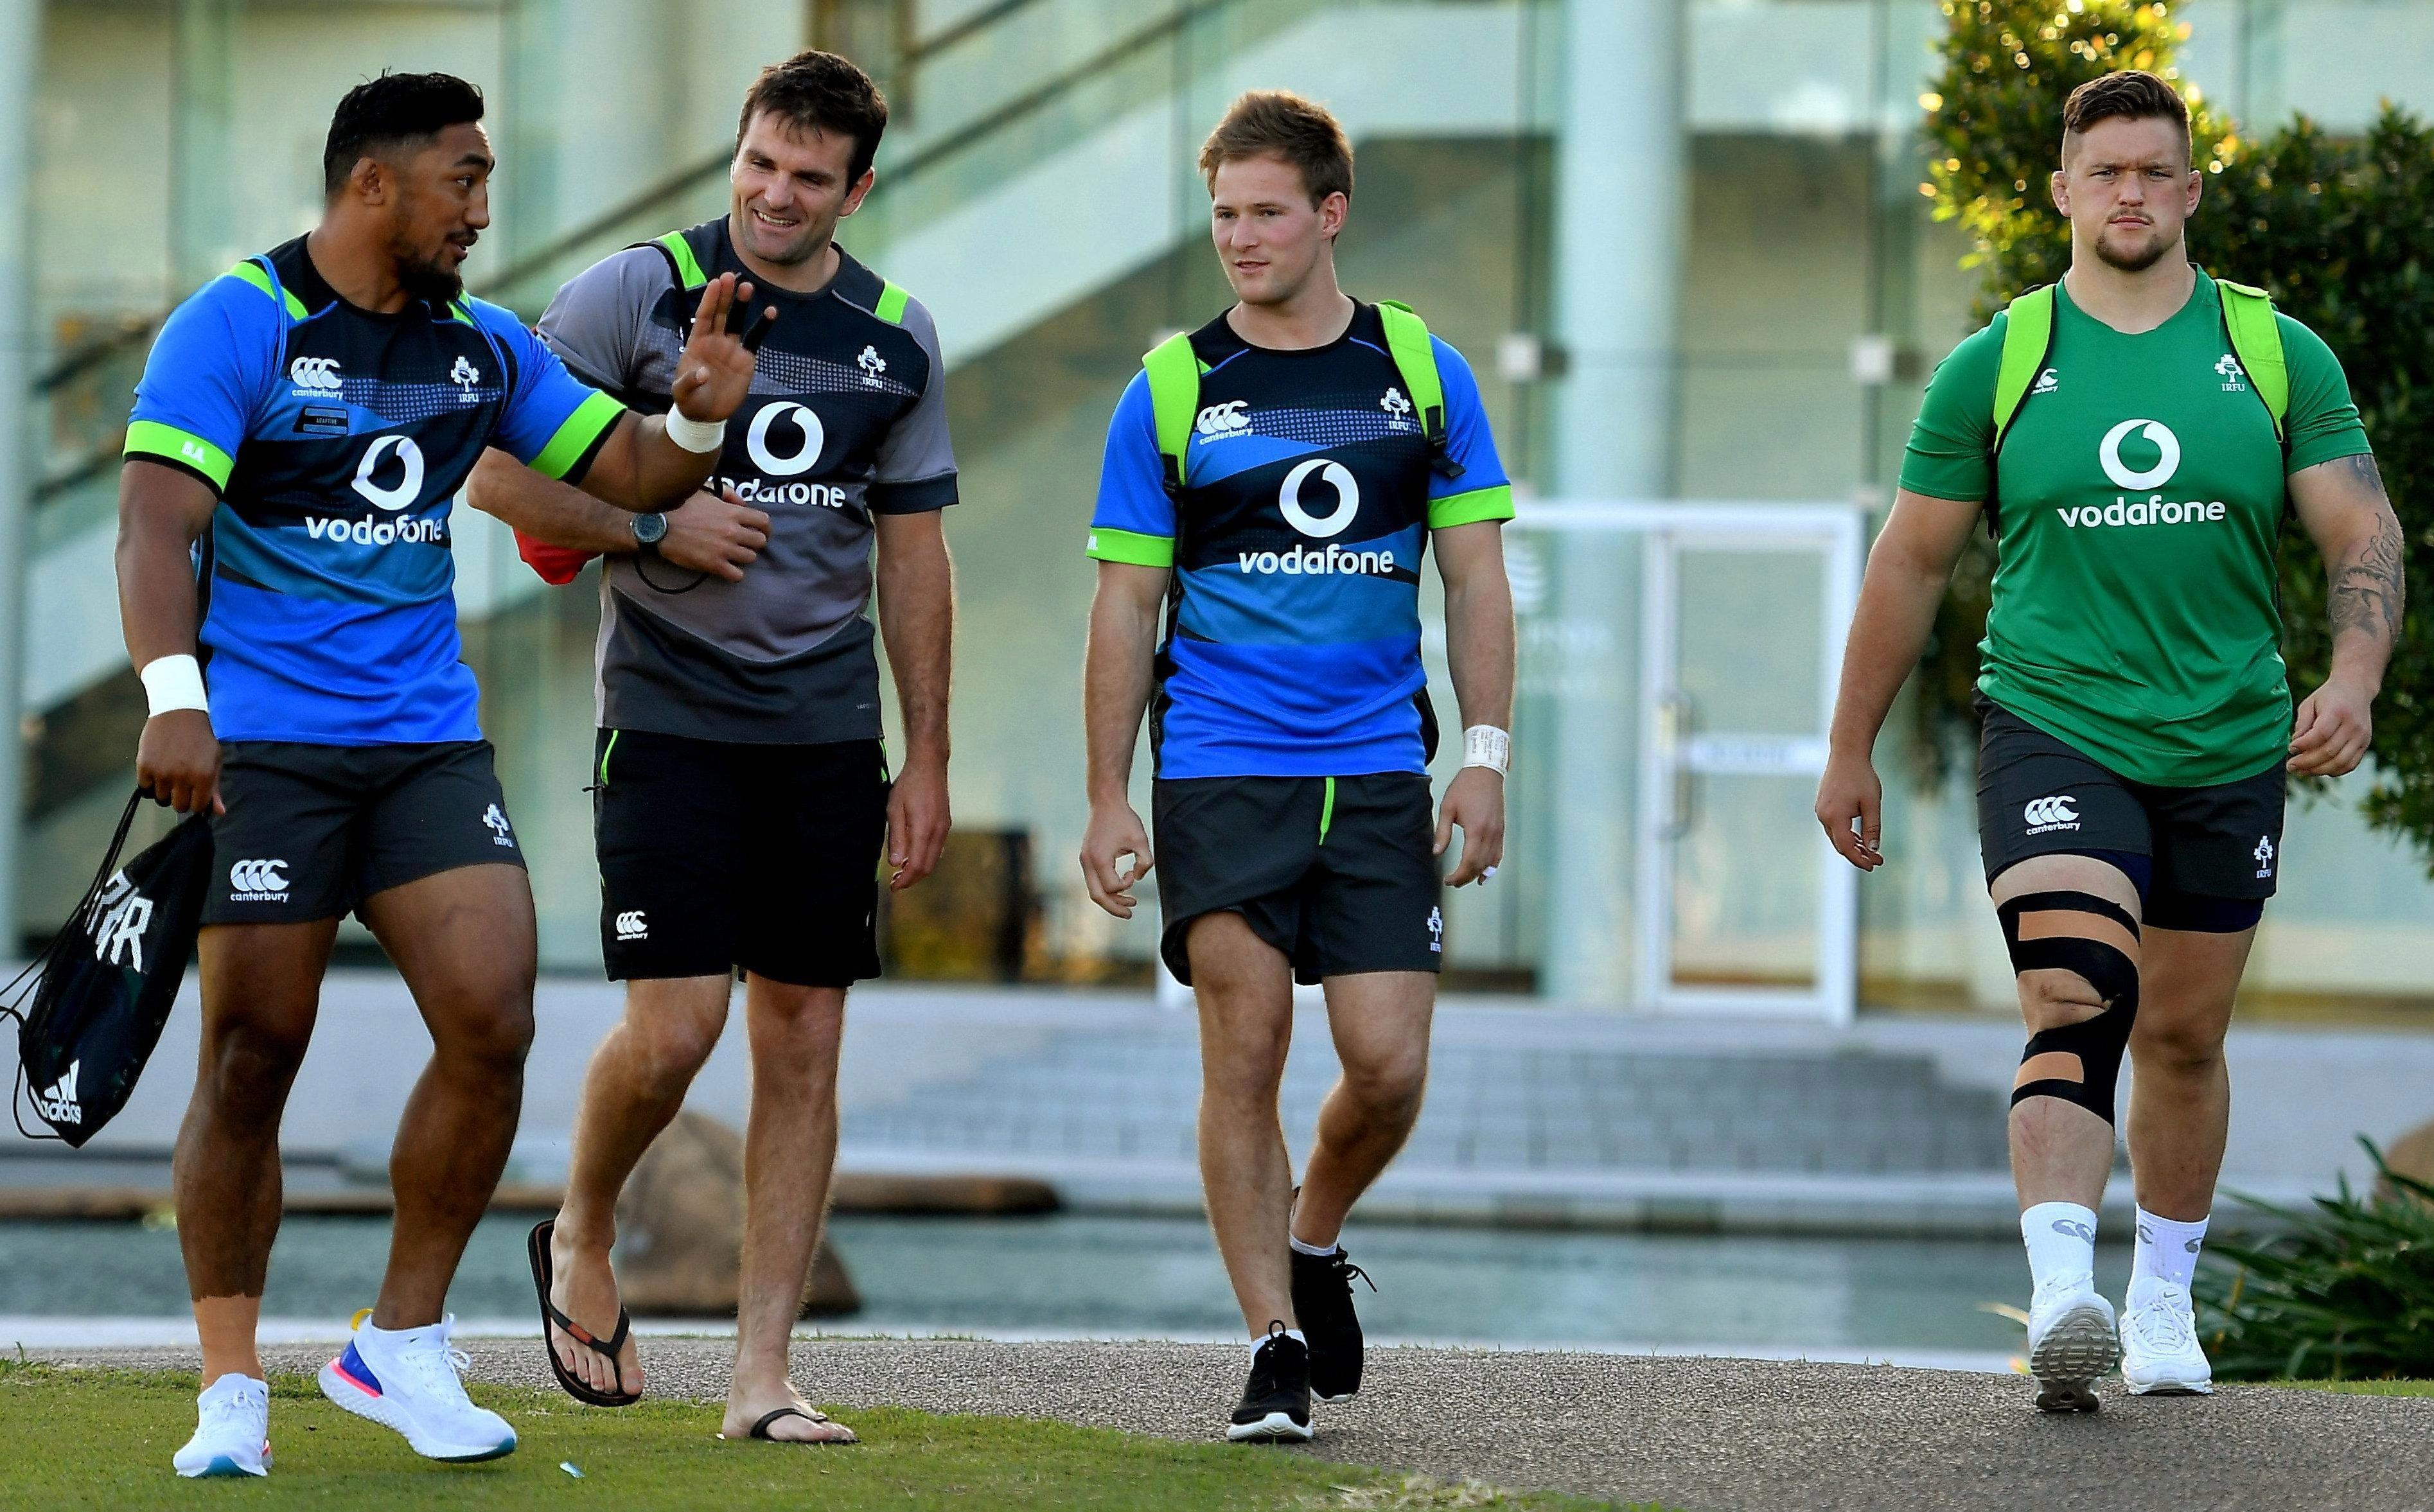 Bundee Aki, assistant coach Jared Payne, and team-mates Kieran Marmion and Andrew Porter chew the cud